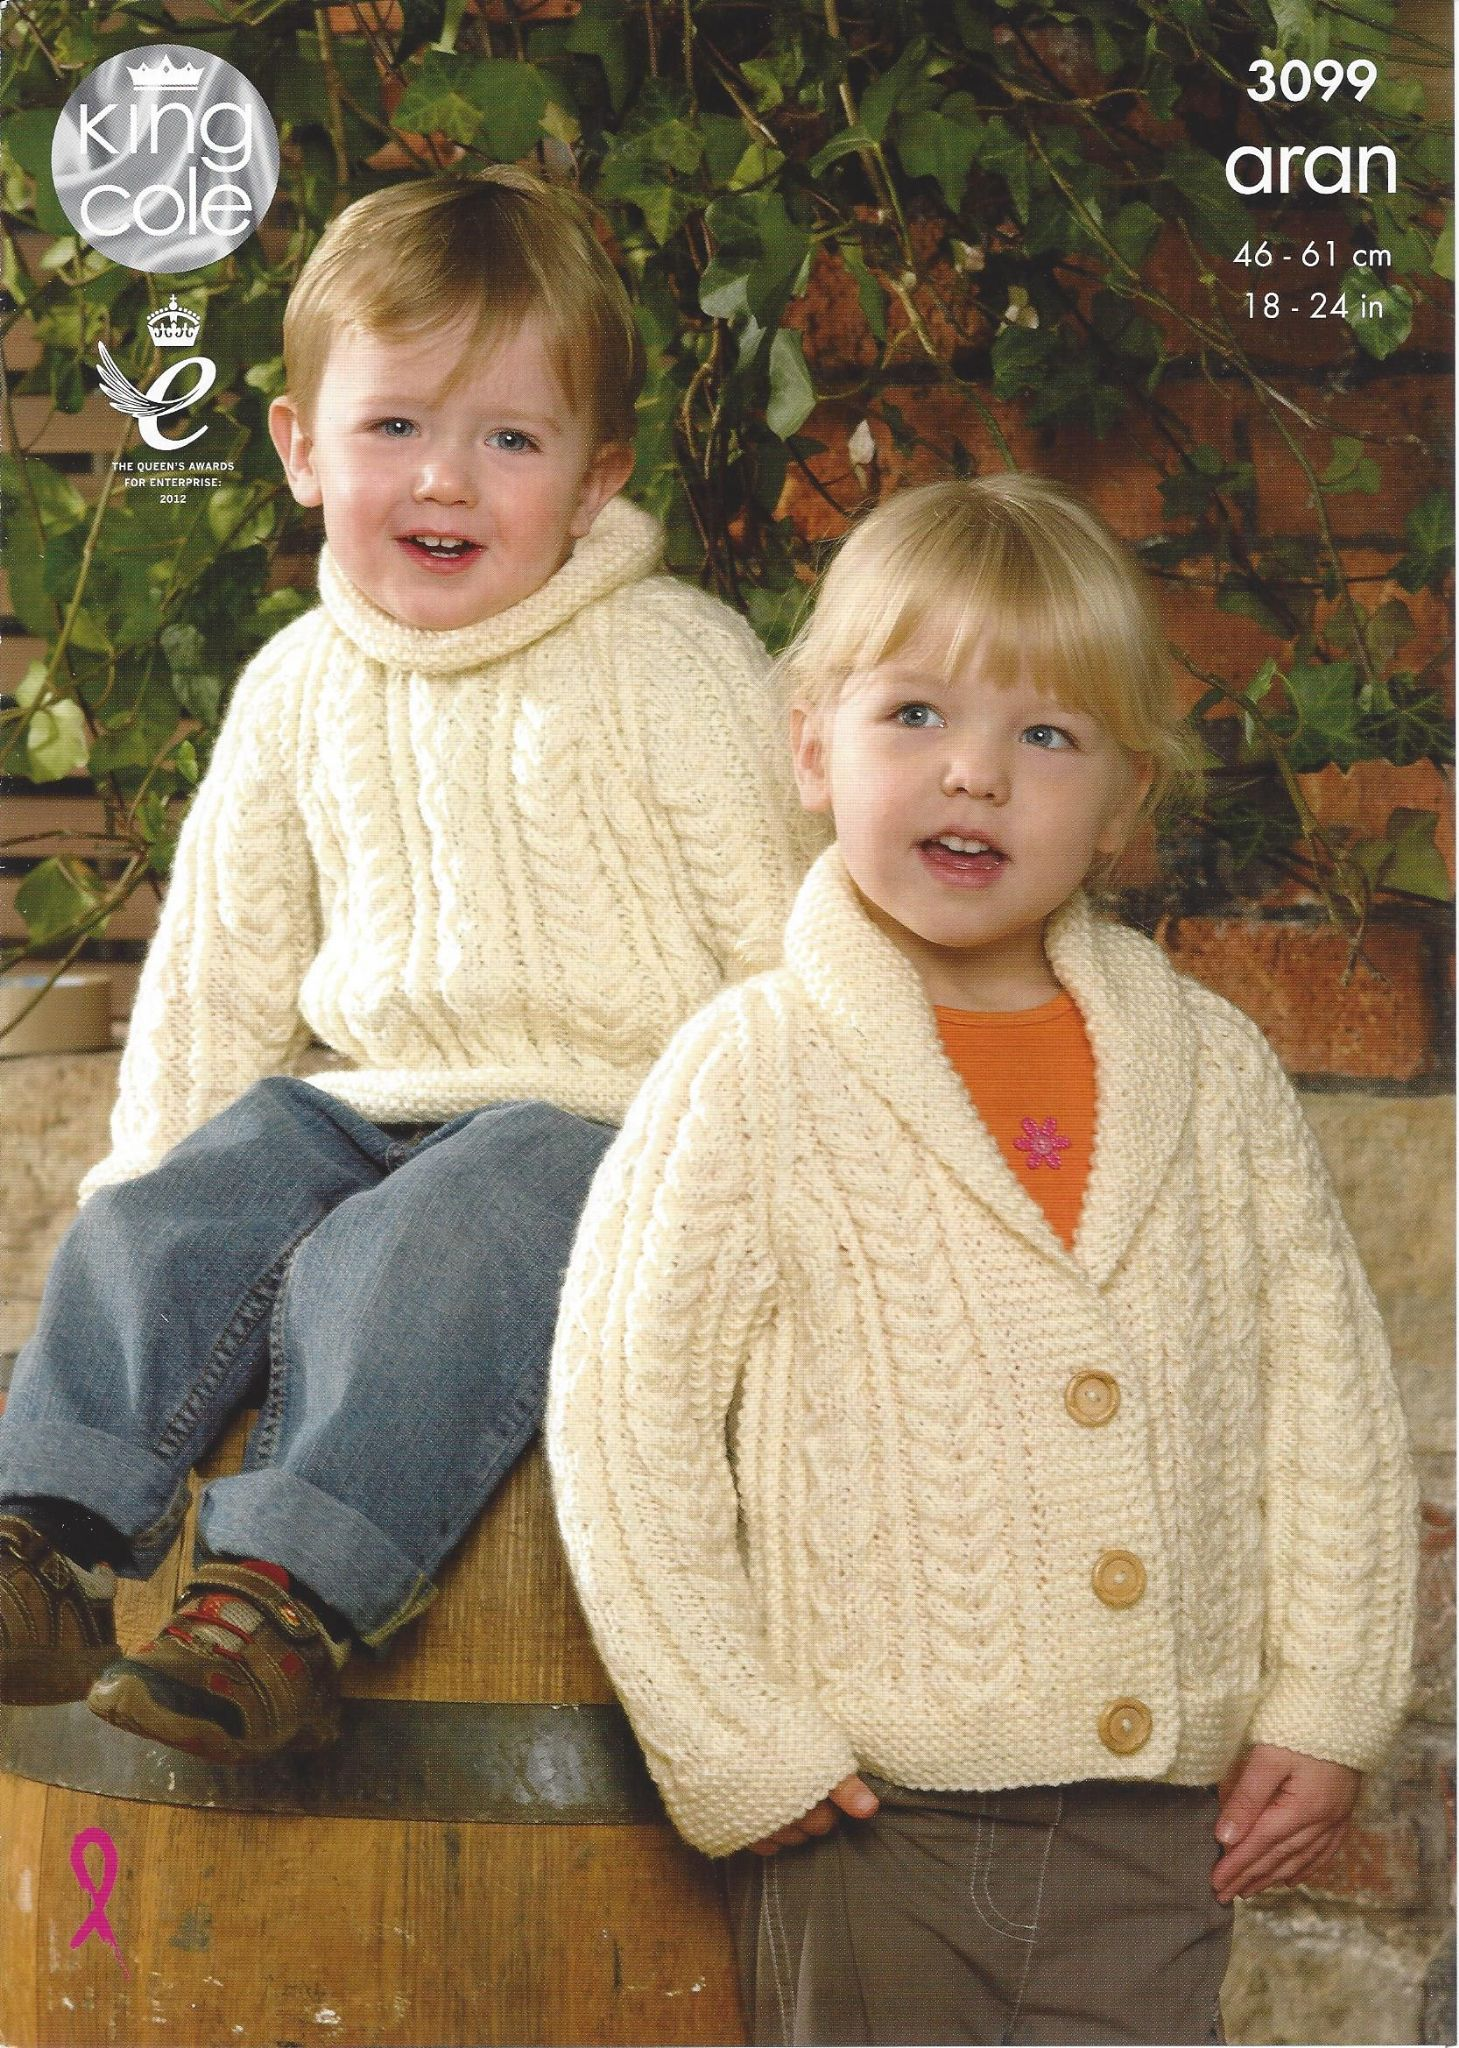 King Cole Aran Knitting Pattern - 3099 Sweater Jacket & Accessories